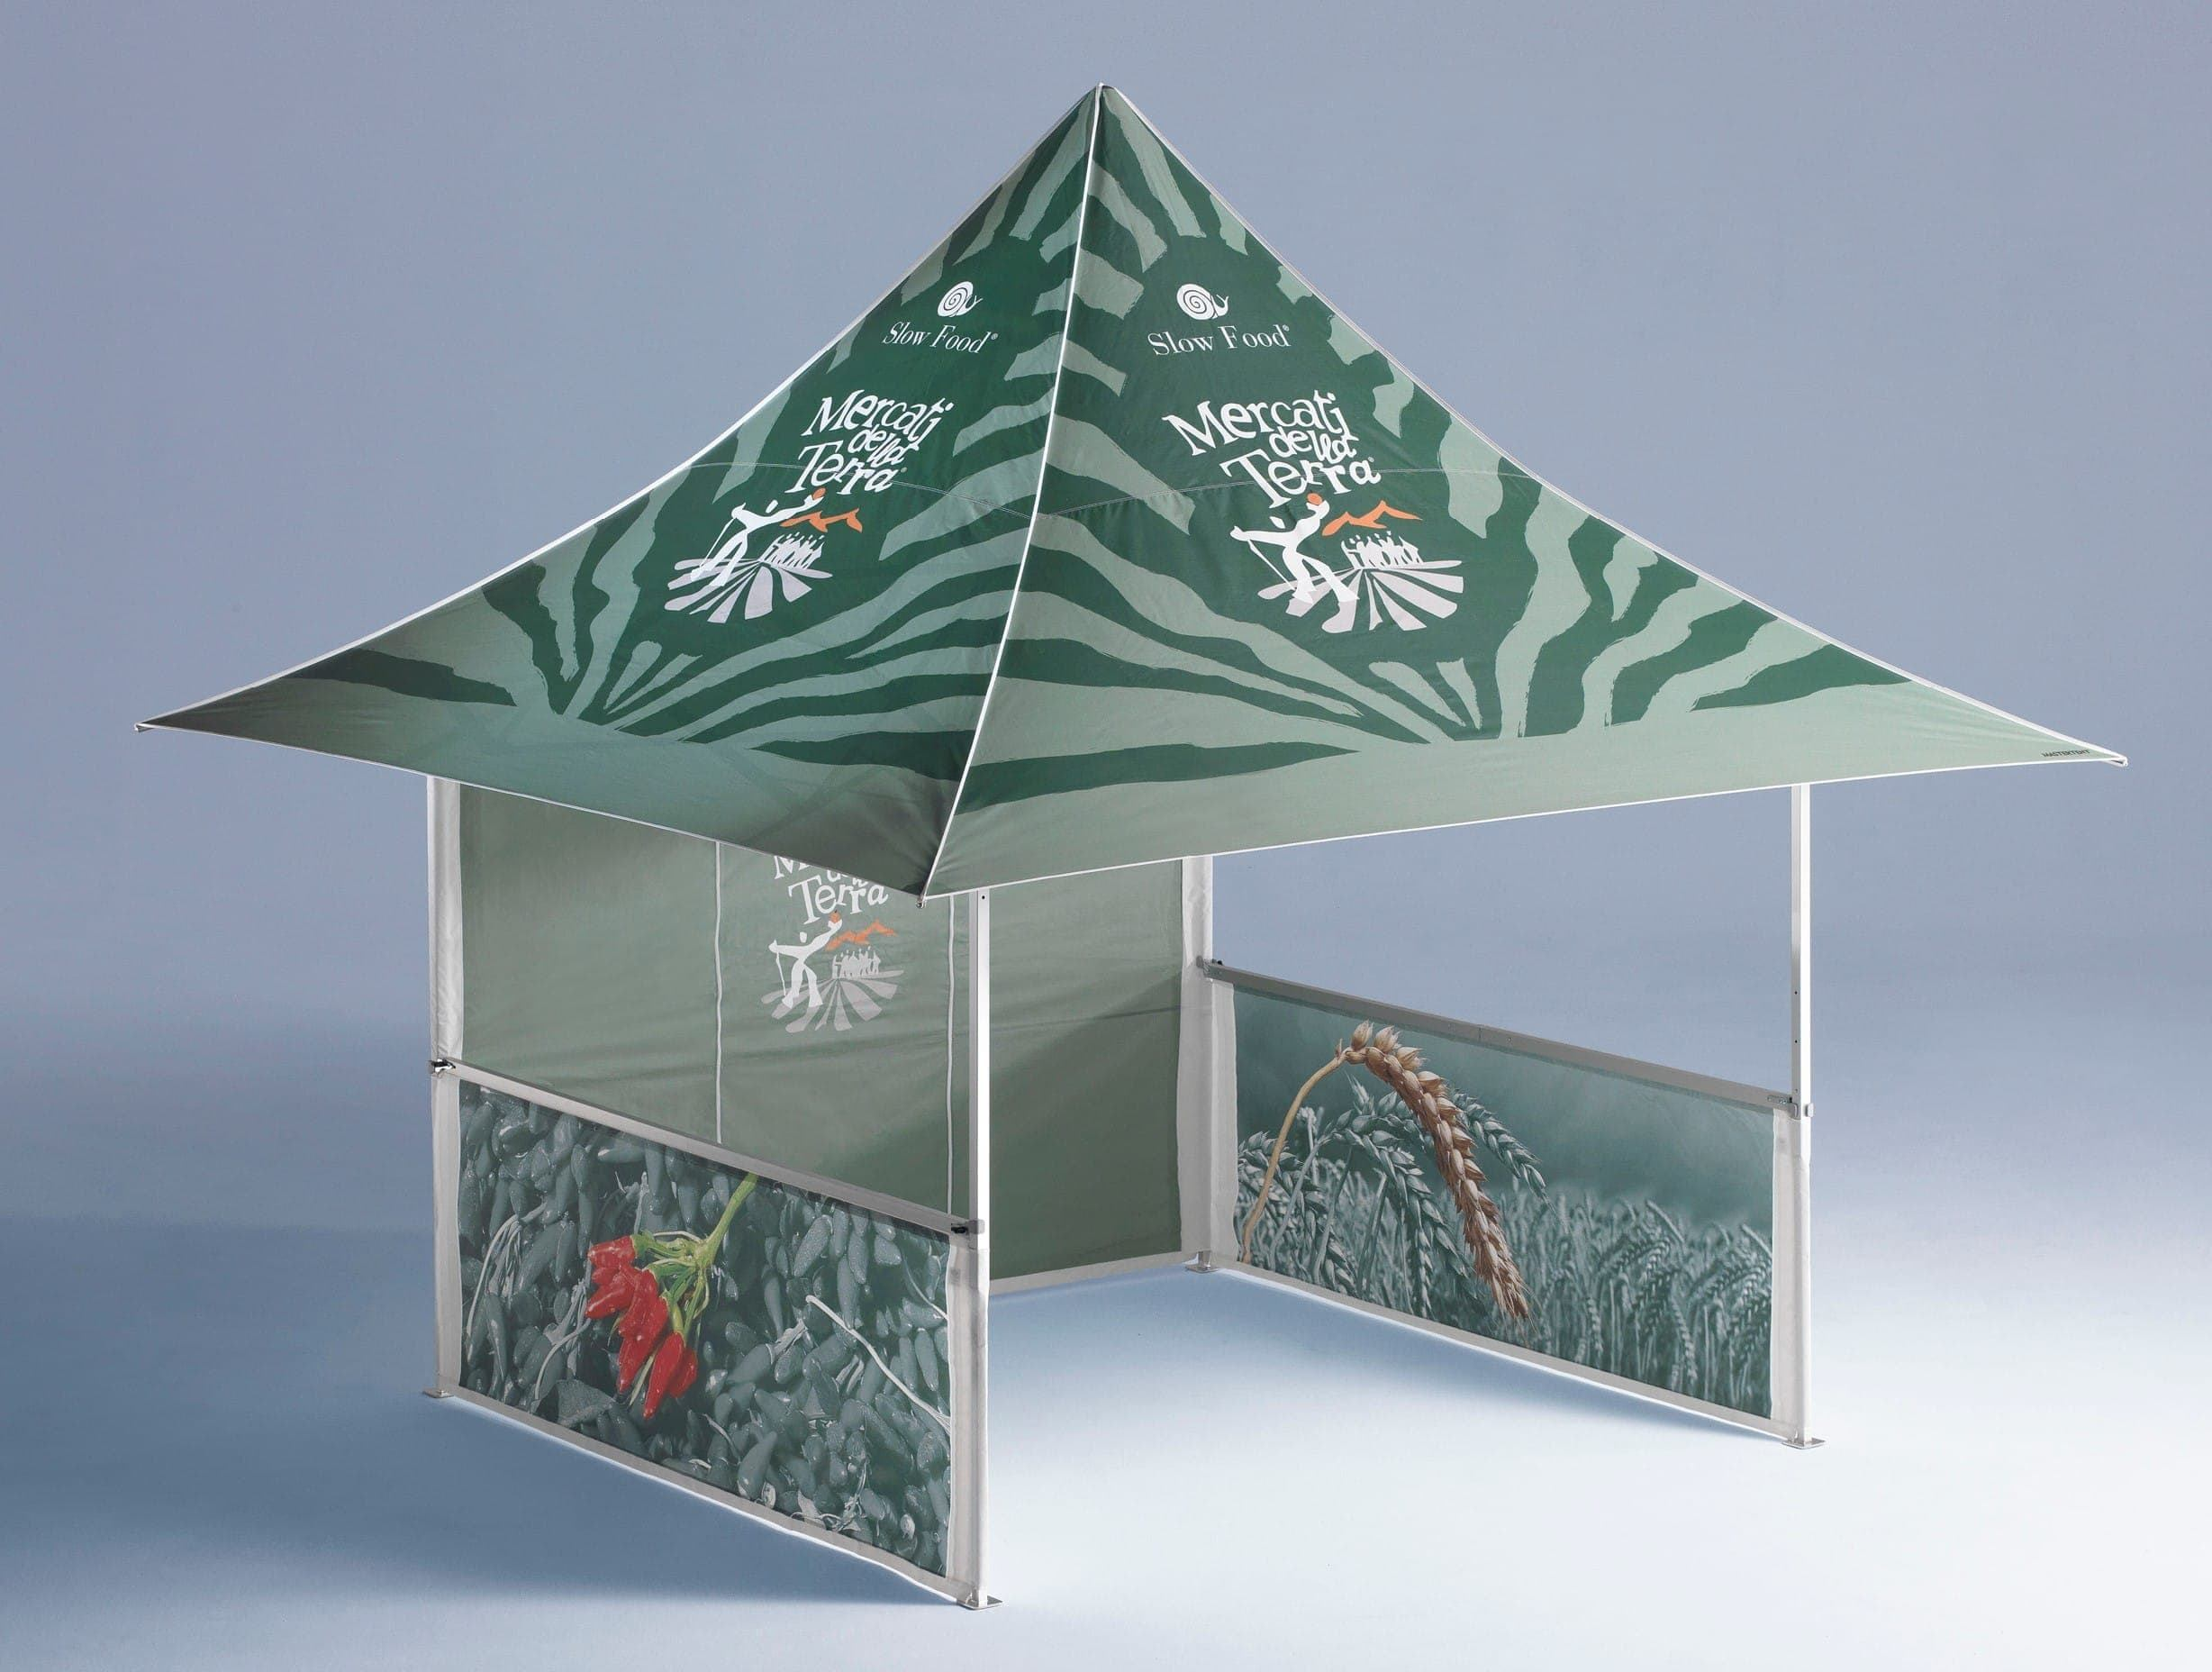 <p>Tent – Shop – Zoo</p> <p>3m x 3m Shop 4 Awnings (4.3m x 4.3m)</p> <p>Fully printed folding tent.</p>